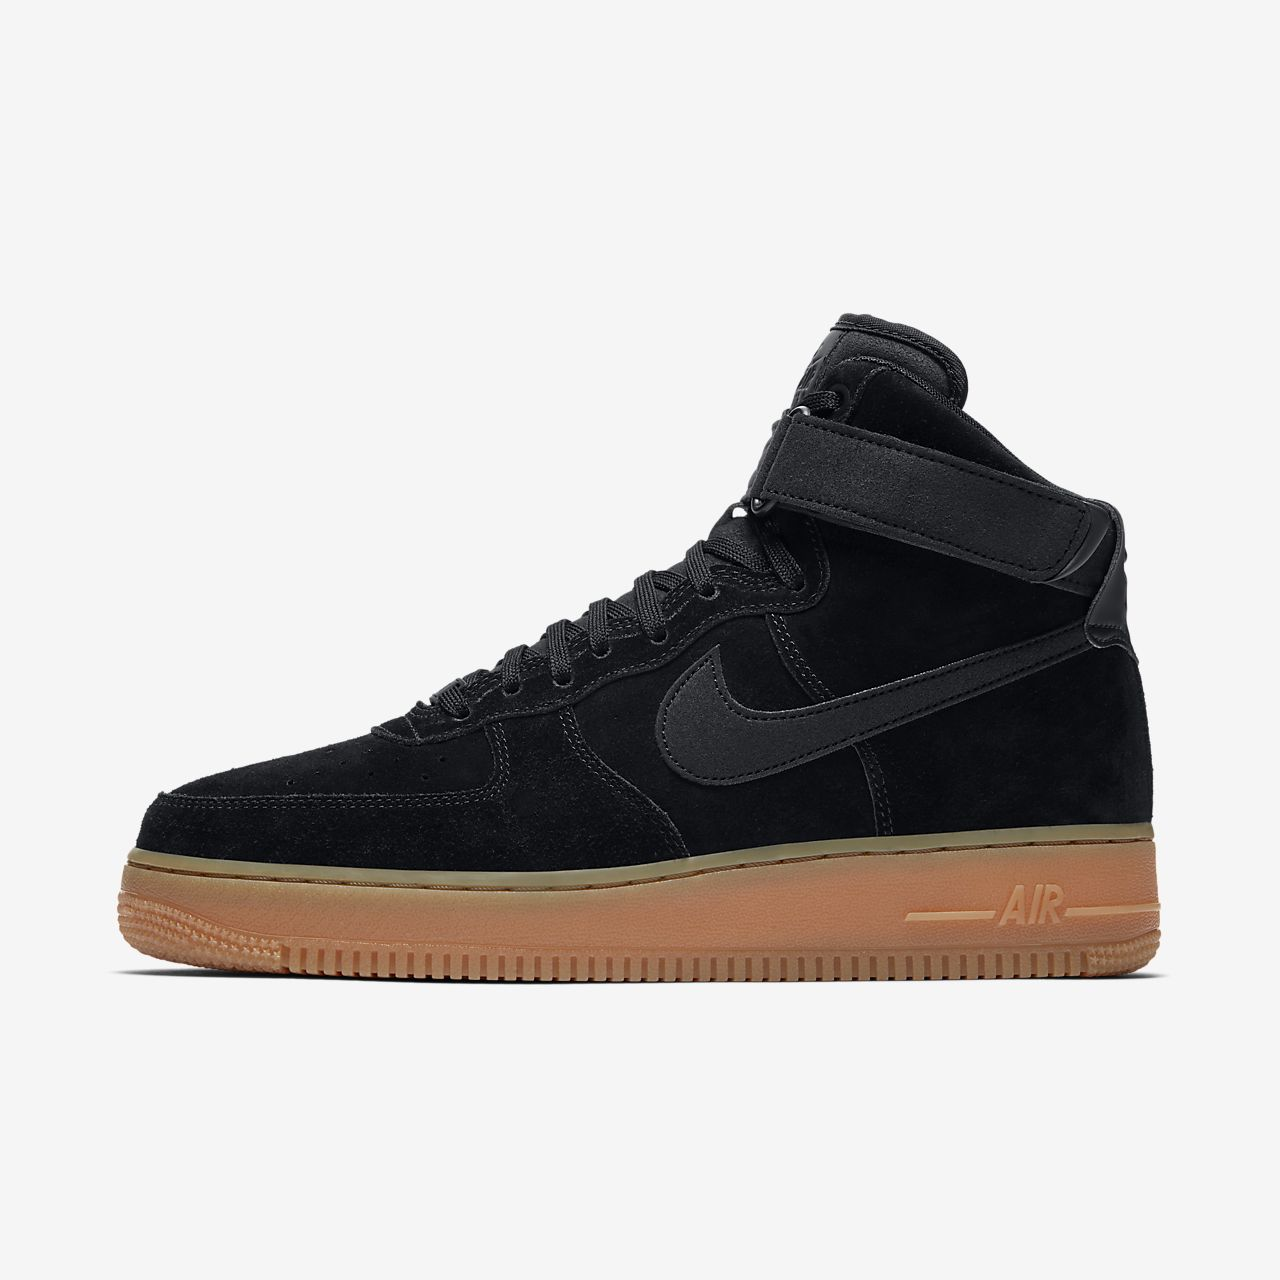 nike air force 1 high 07 lv8 suede handbags